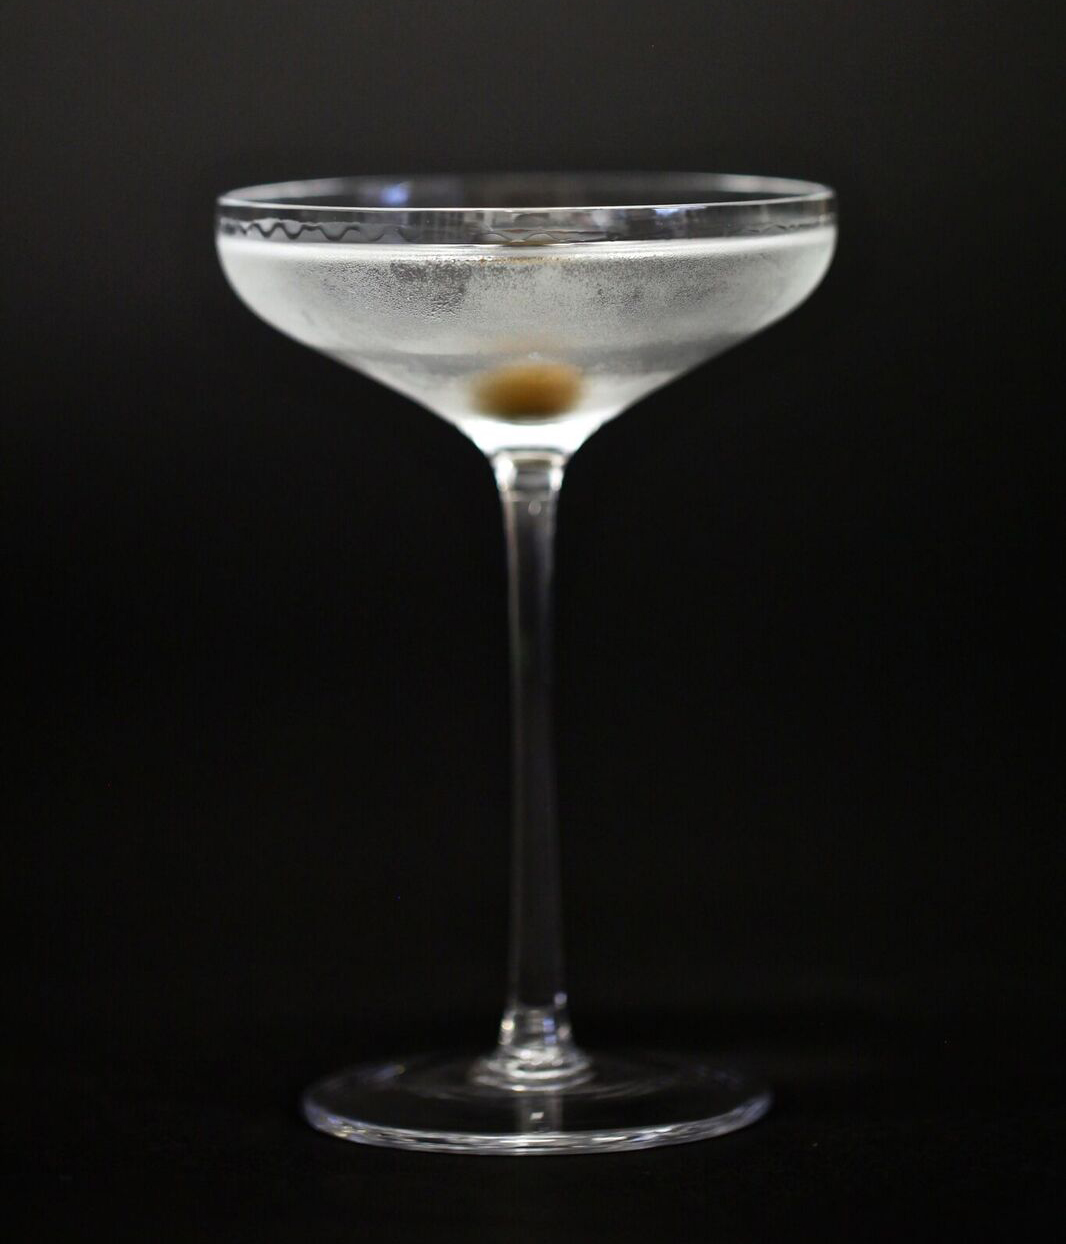 Cocktail and dinner or cocktails and dinner